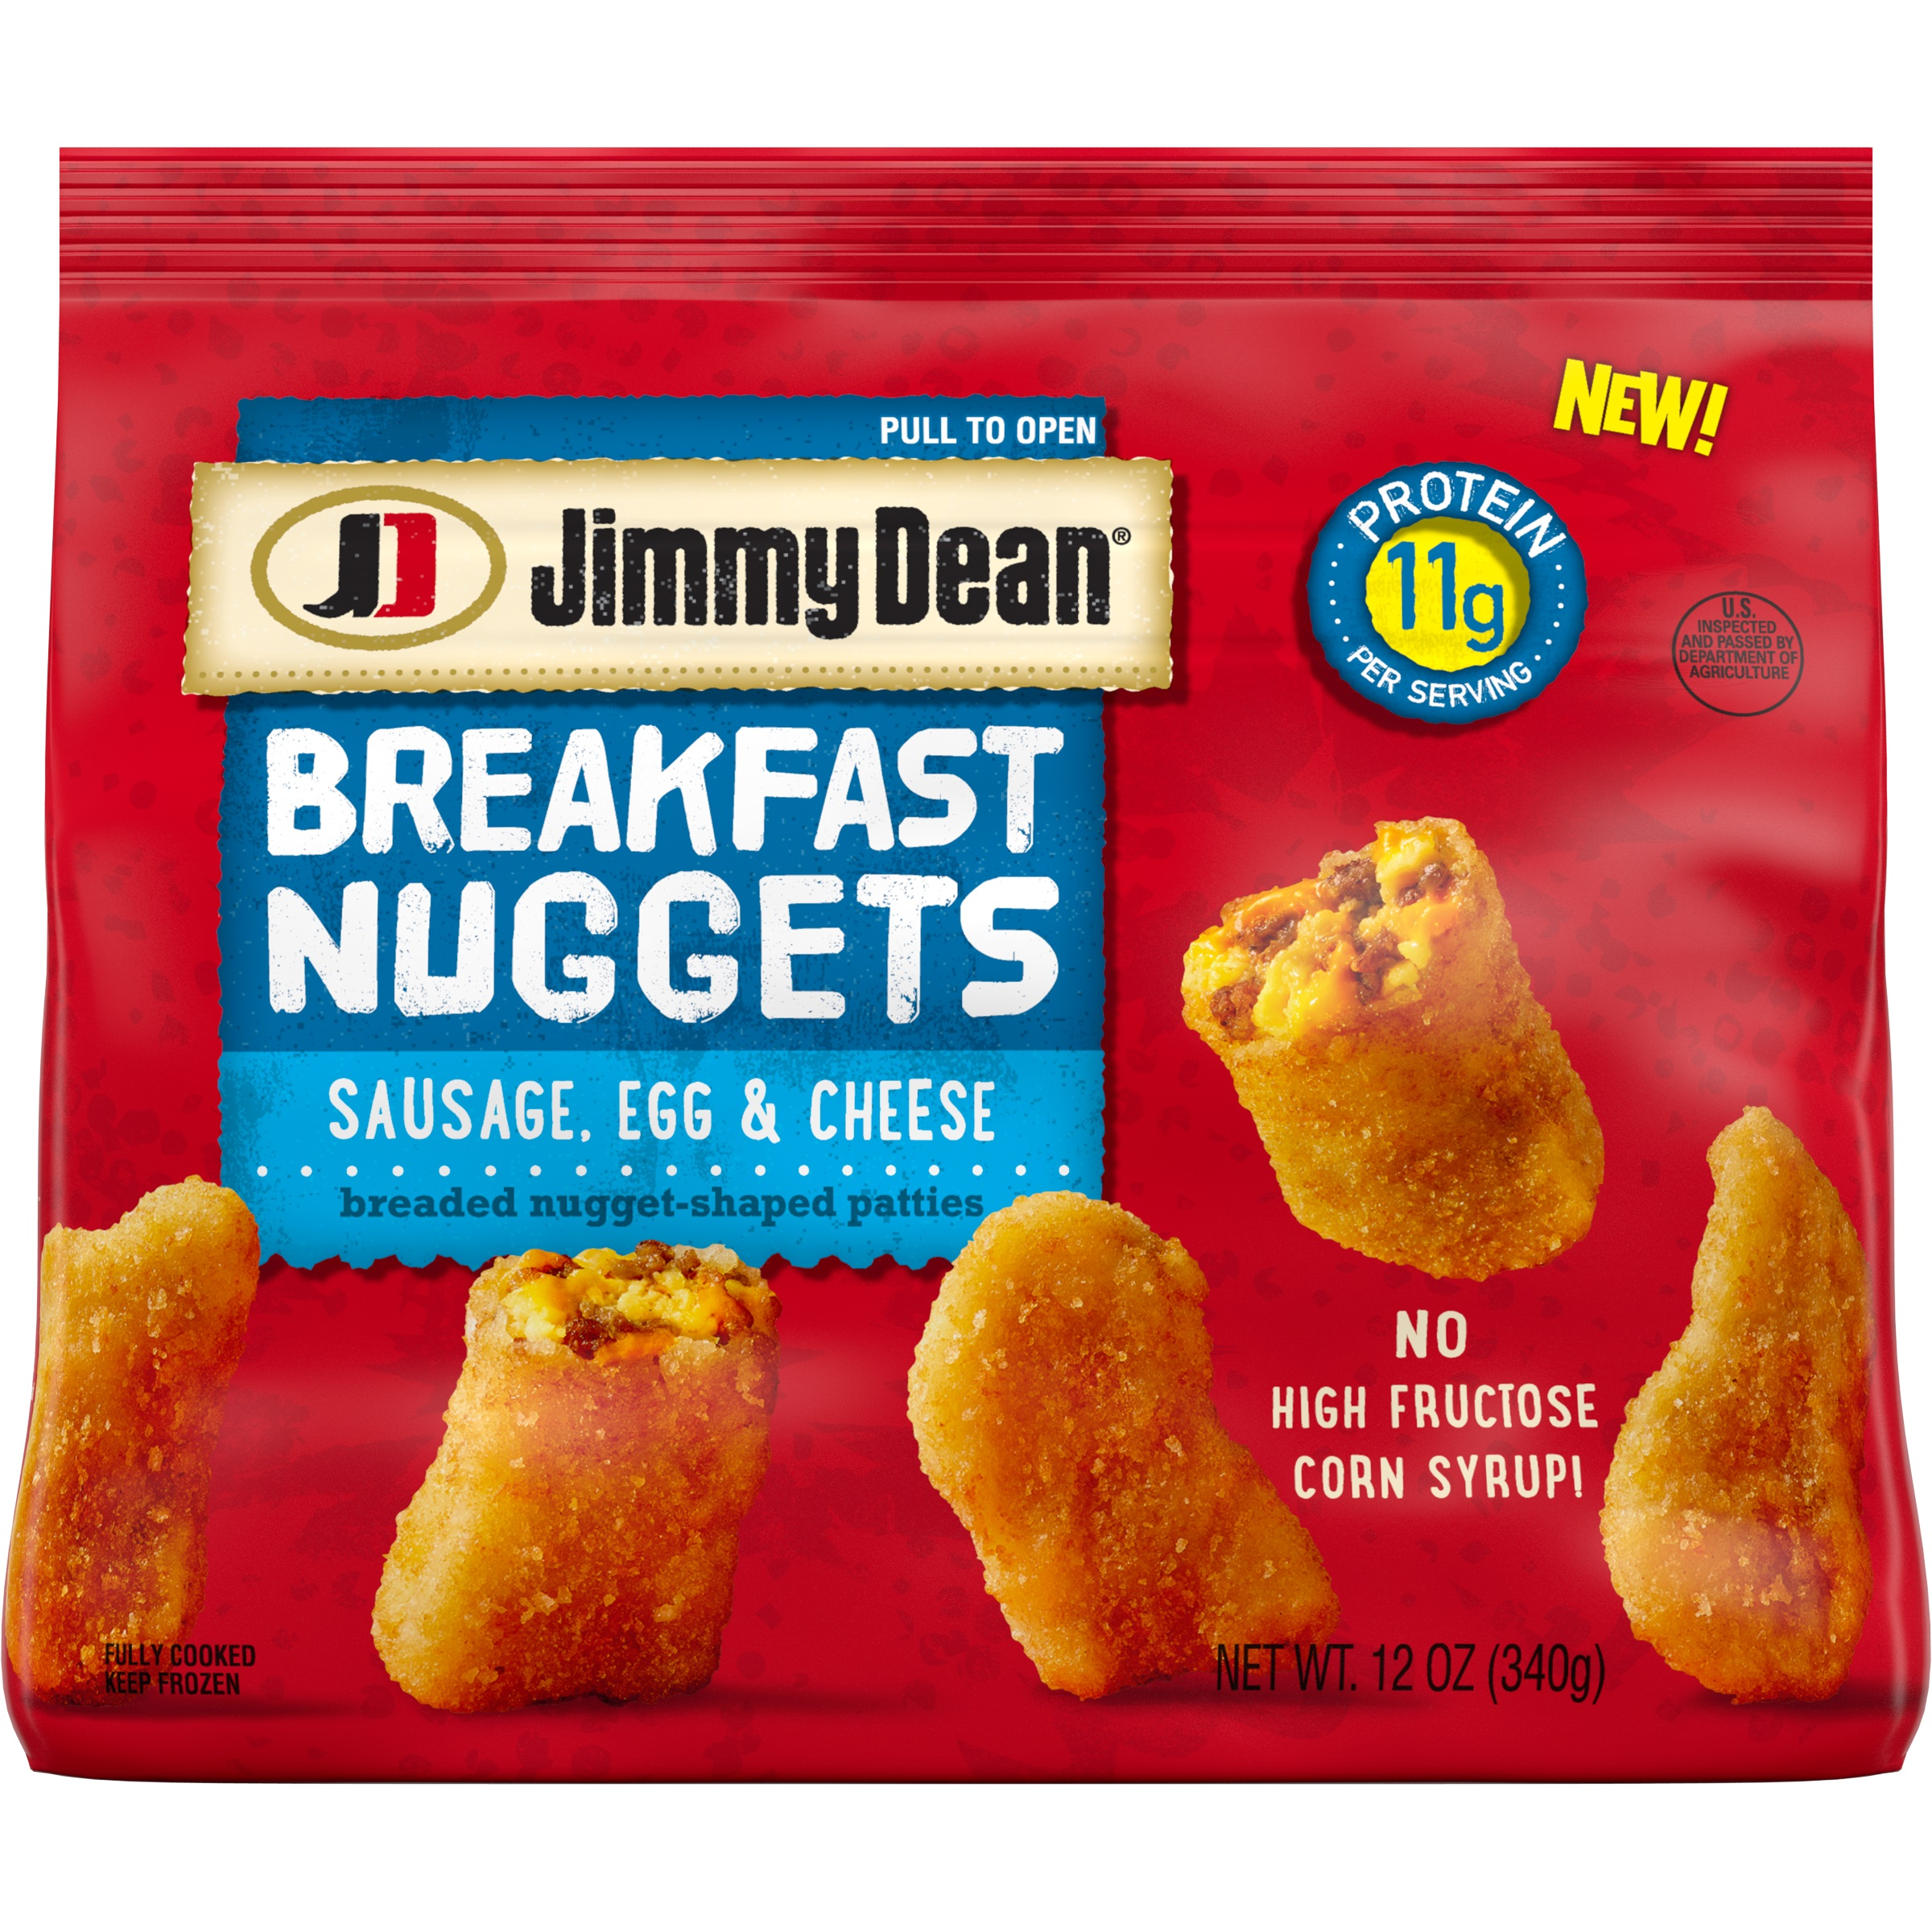 Jimmy Dean Breakfast Nuggets deliver a fun, new twist on a nostalgic family favorite, now for breakfast. Available in two delicious varieties: Sausage, Egg & Cheese and Chicken Sausage, Egg & Cheese